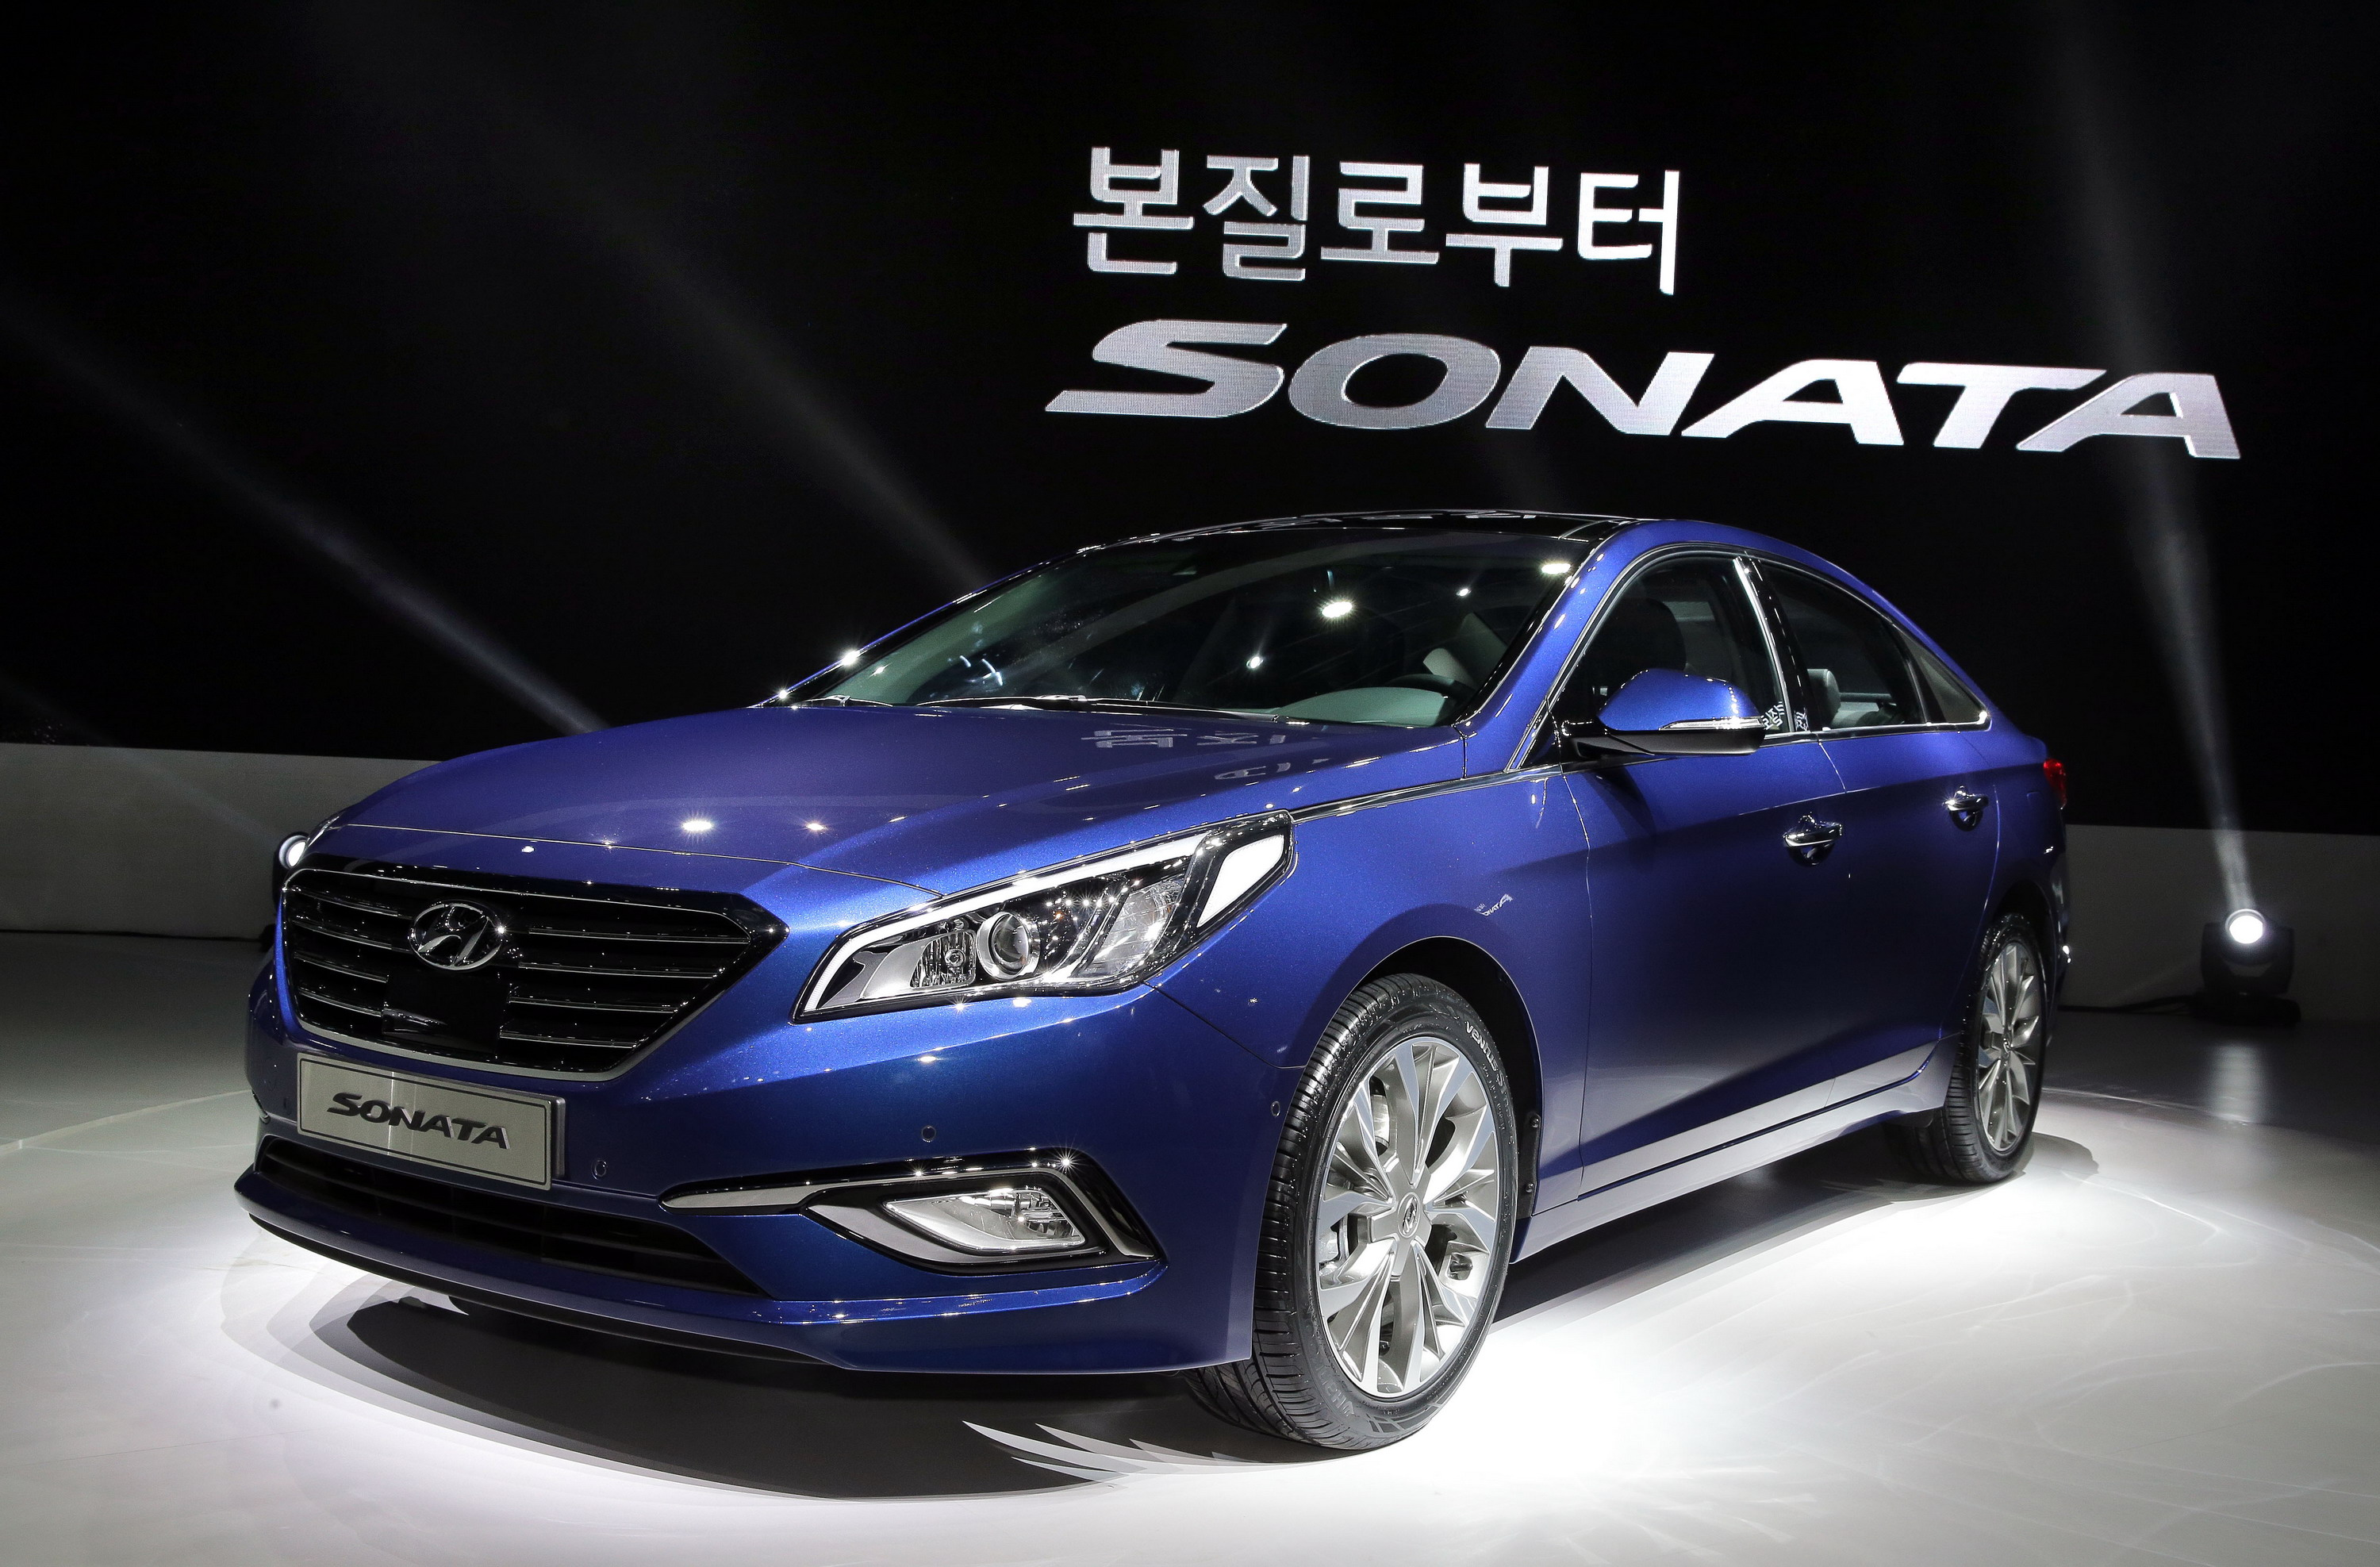 sonata c hyundai sale sport used edgewater near for htm stock